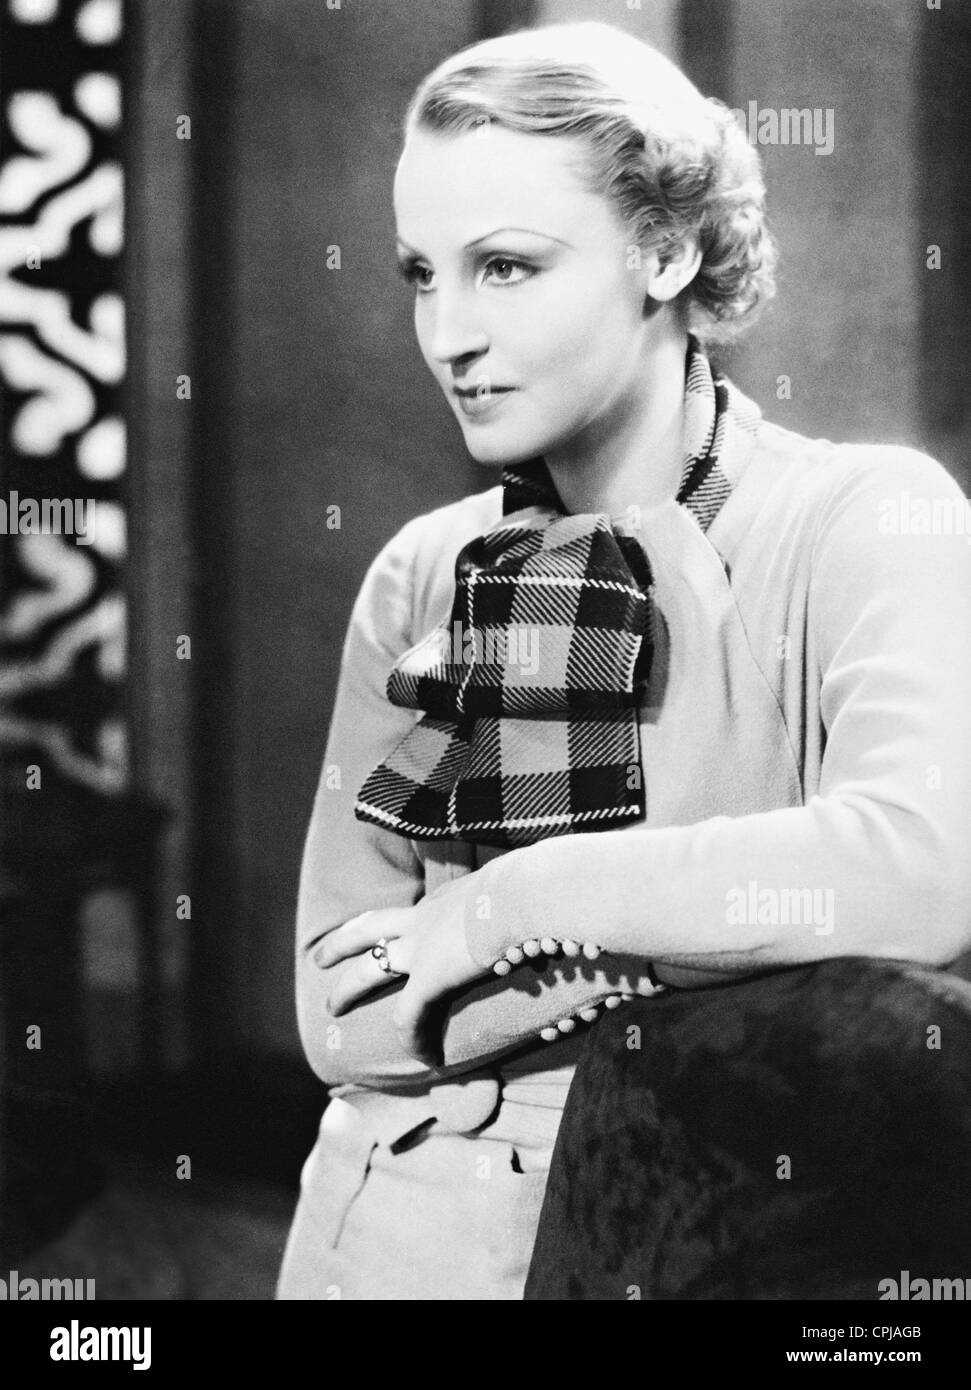 Brigitte Helm in 'Gold', 1934 - Stock Image